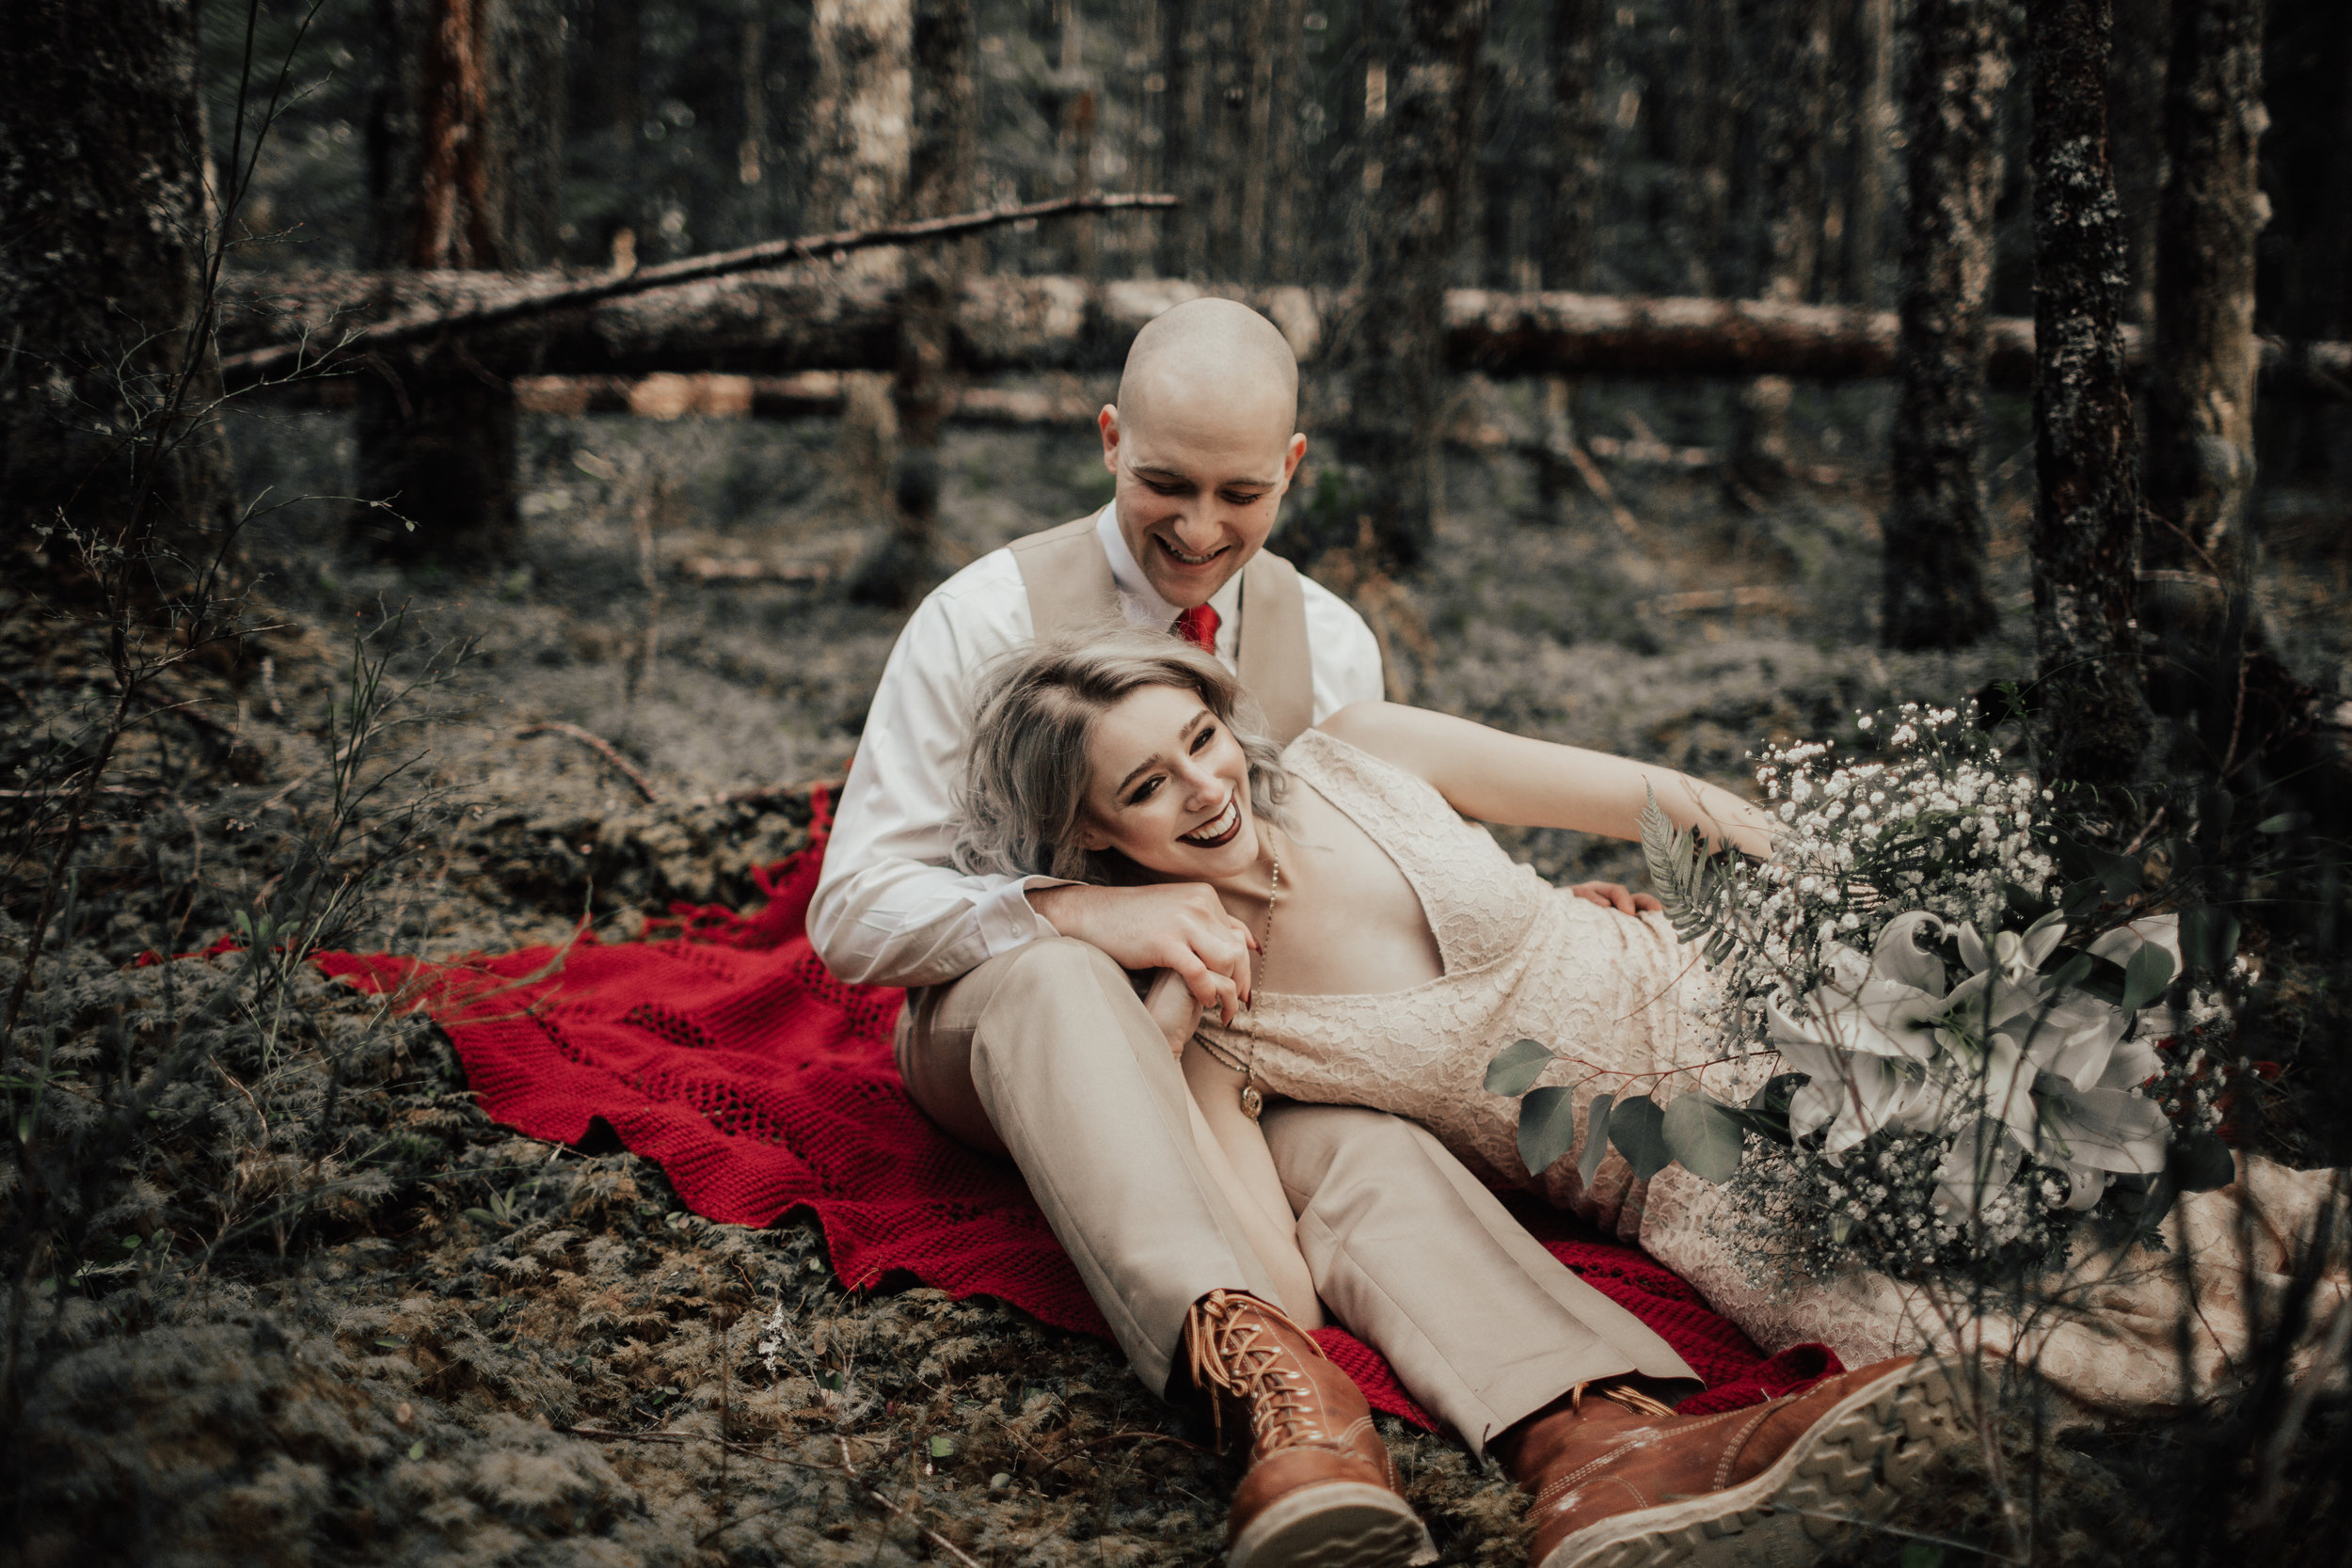 Port Angeles-PNW-Sequim-Portrait-wedding-elopement-photographer-kayladawnphoto-kayla dawn photography-olympic peninsula-portraiture54.jpg